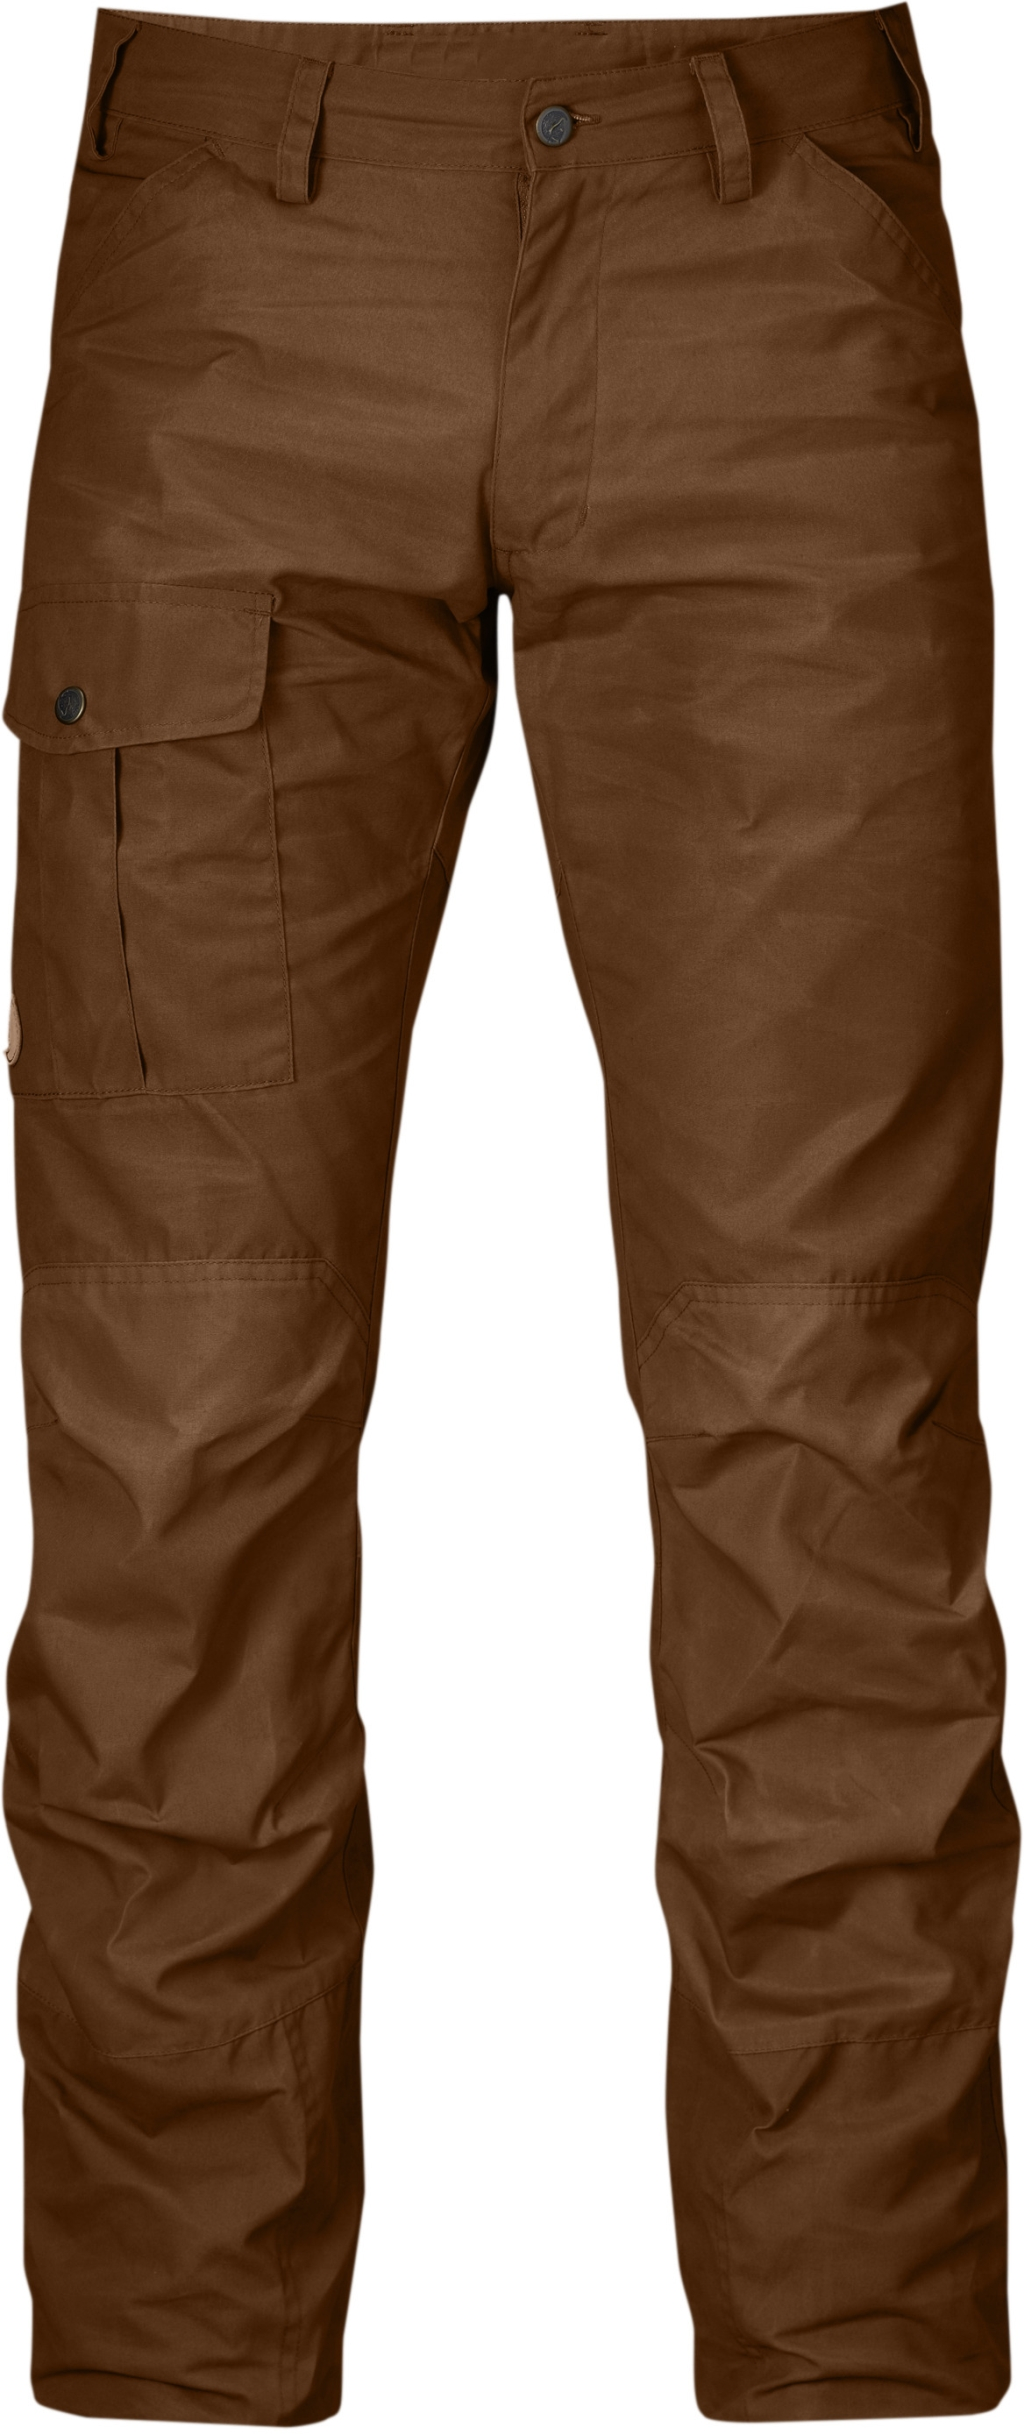 FjallRaven Nils Trousers Chestnut-30